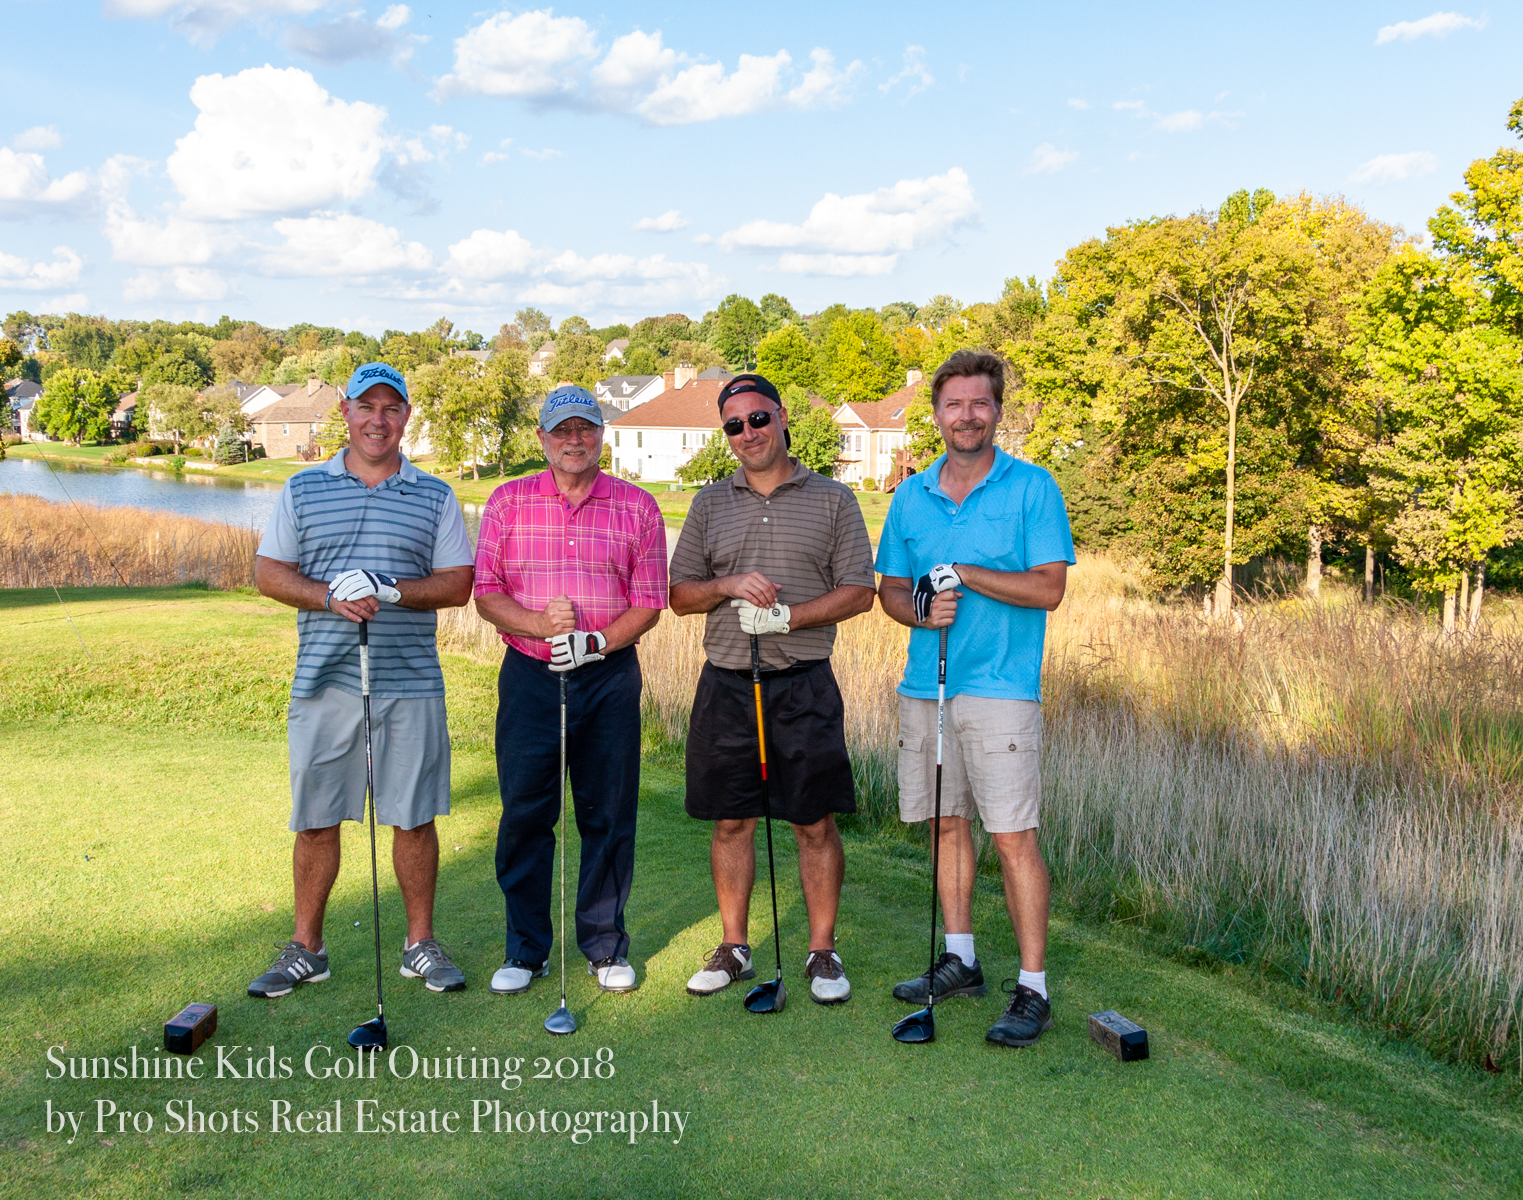 SSK Golf Player Photos-41.jpg